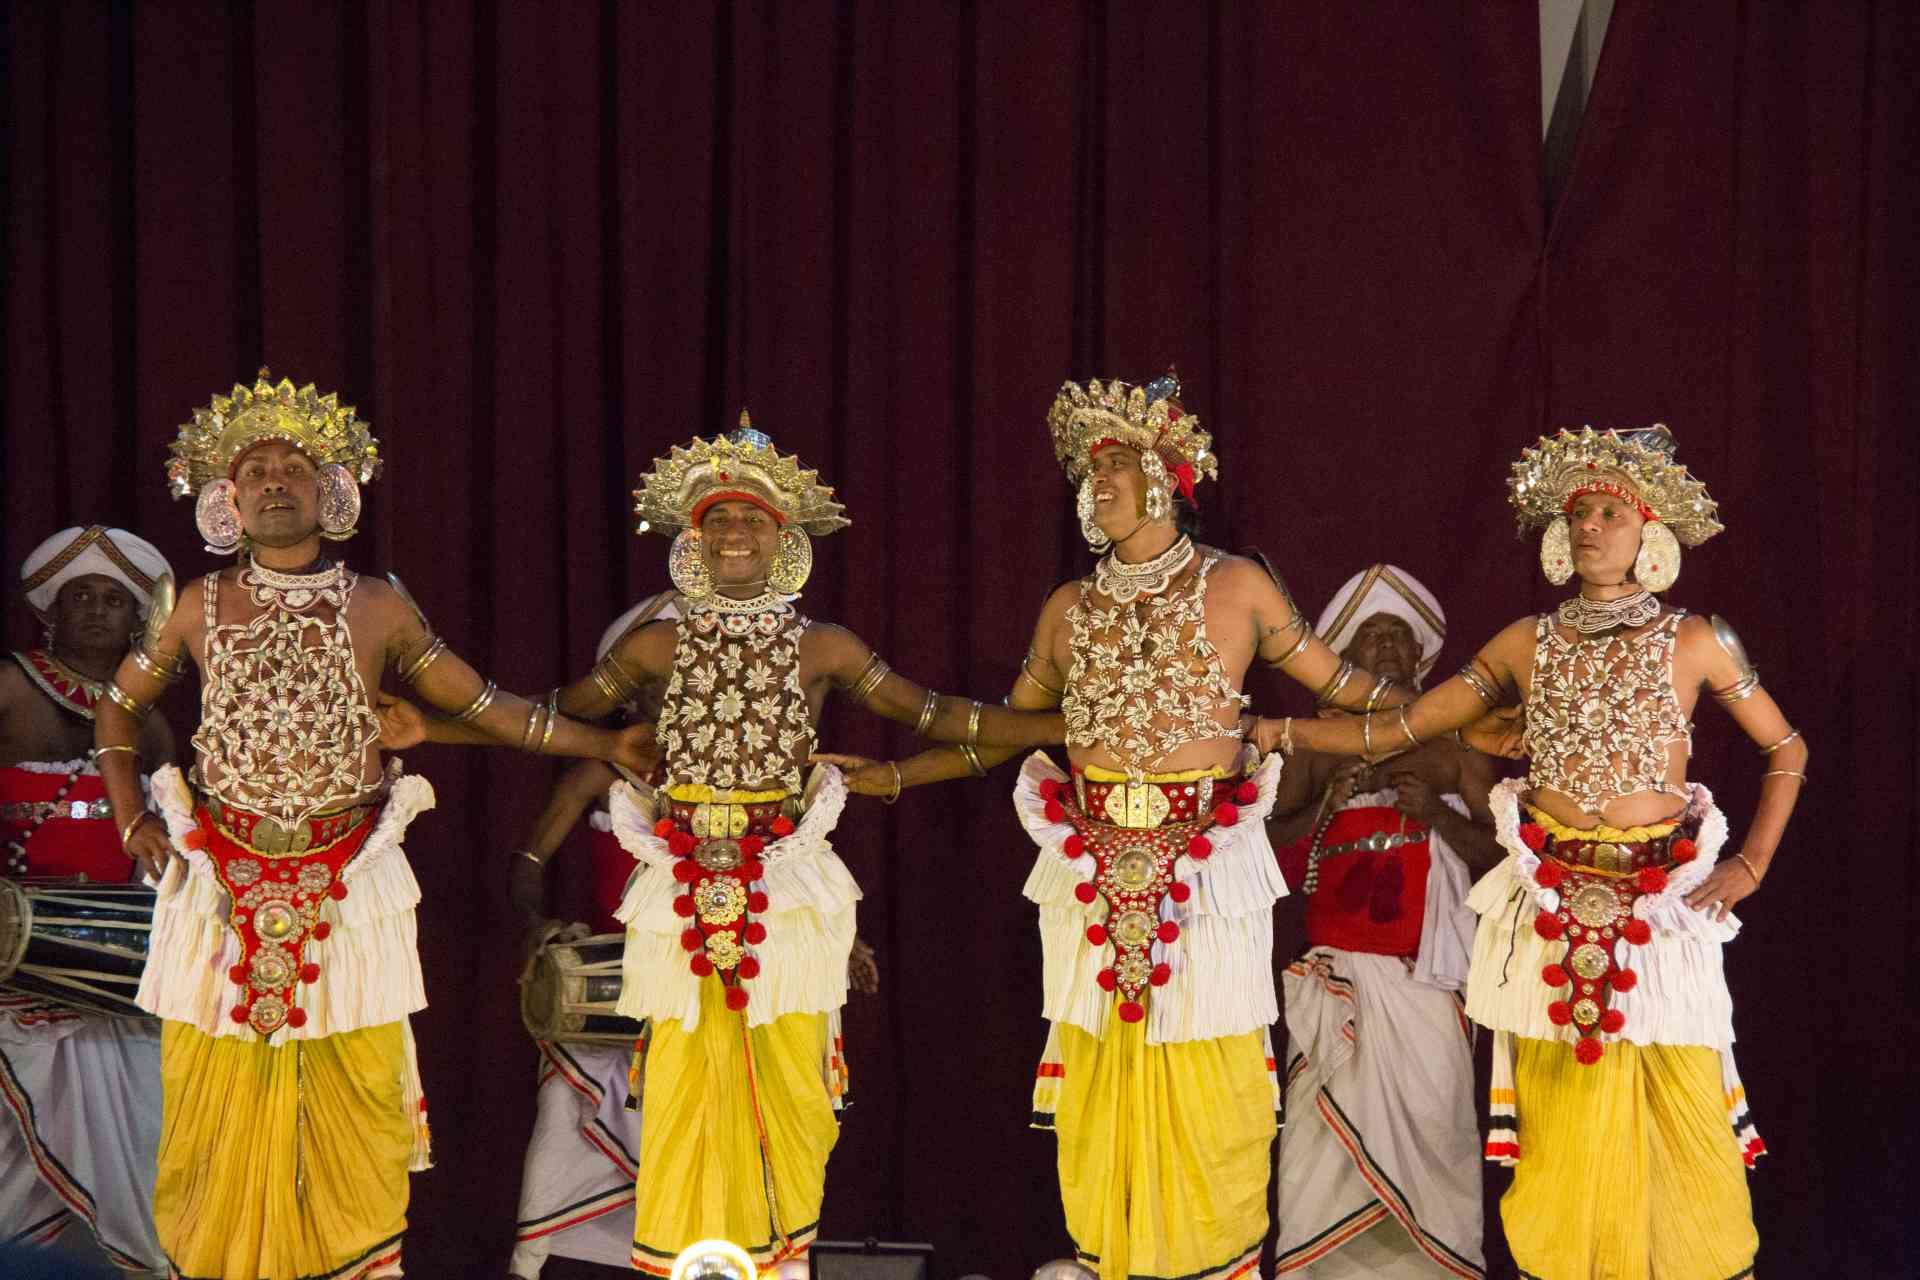 Sri Lanka, A Welcoming and Diverse Country